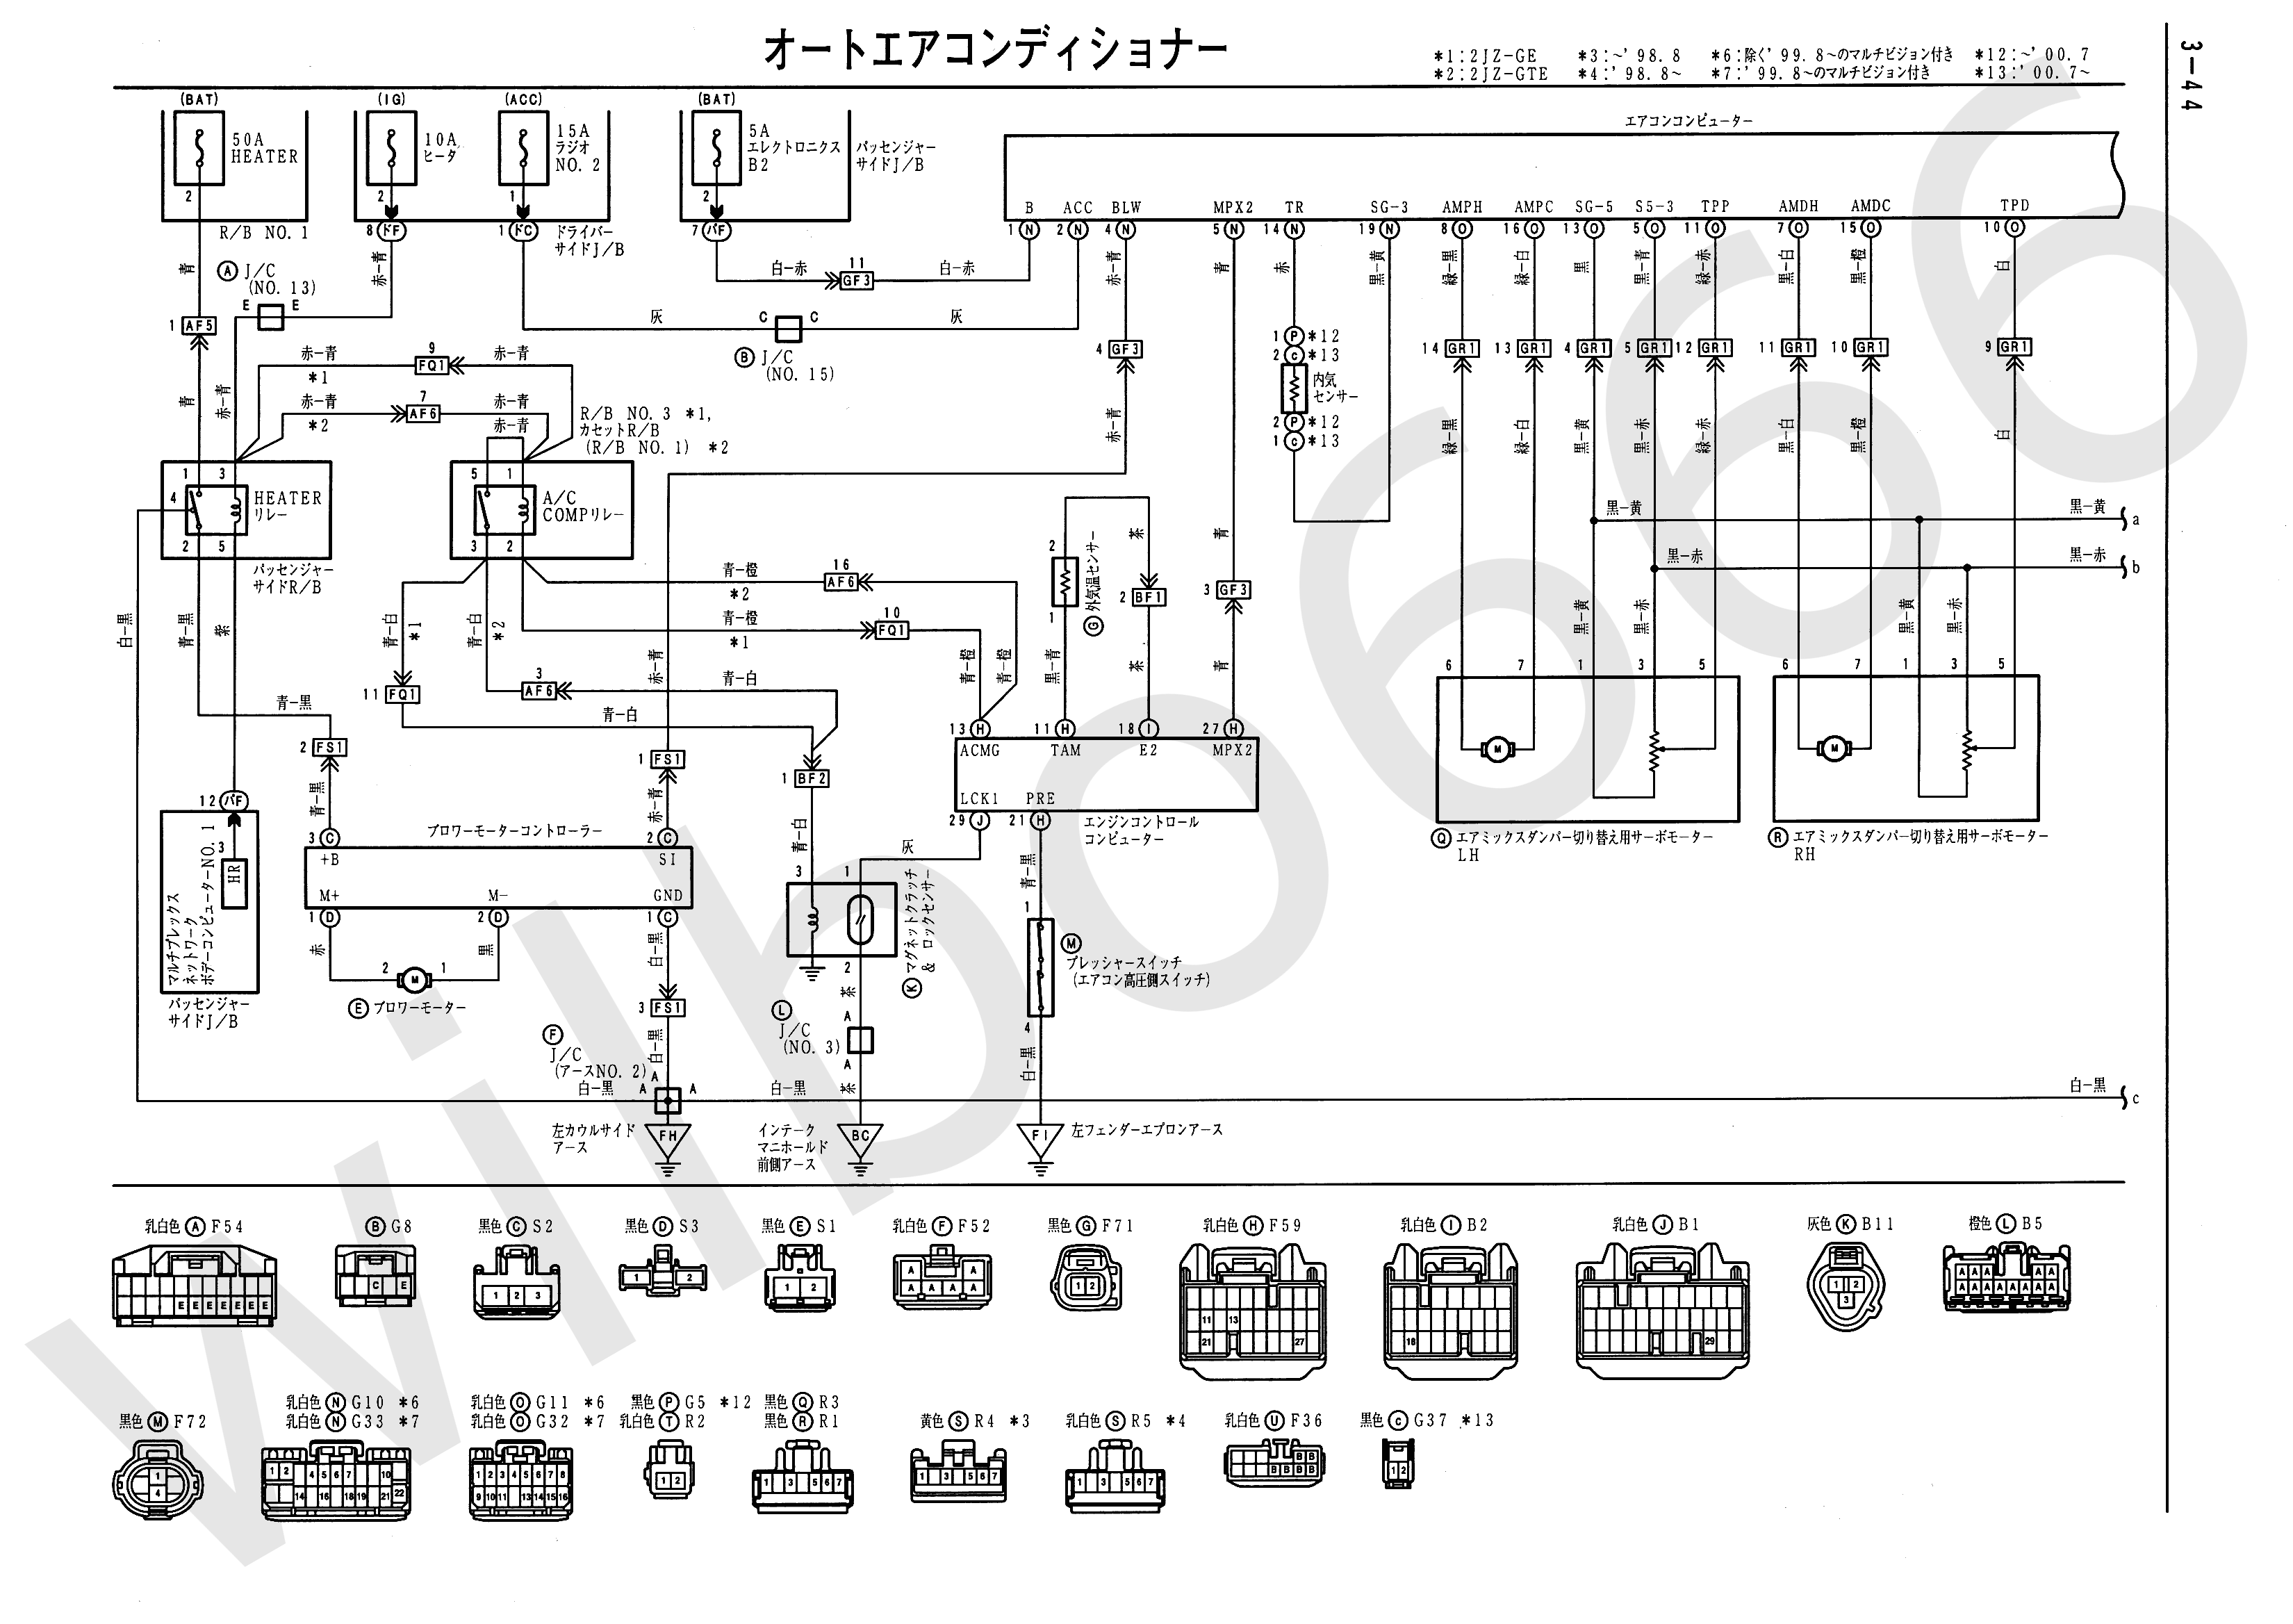 JZS161 Electrical Wiring Diagram 6748505 3 44 wilbo666 2jz gte vvti jzs161 aristo engine wiring 2jzgte wiring diagram at mifinder.co